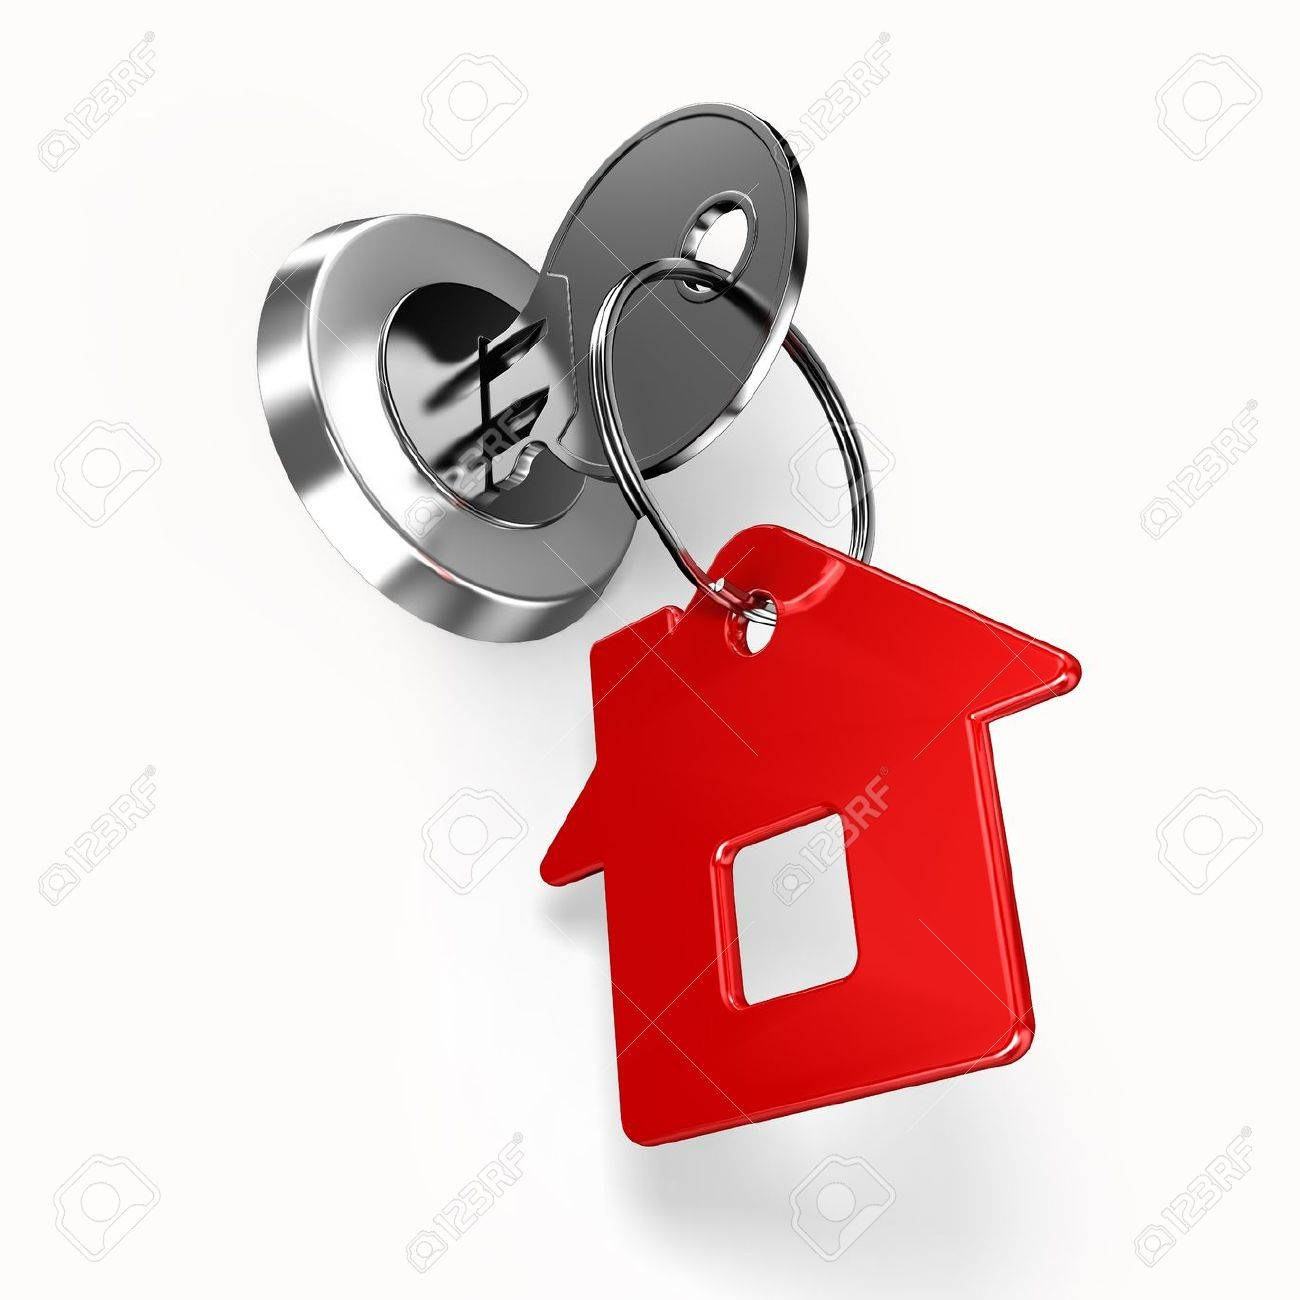 House key with label Stock Photo - 9807951